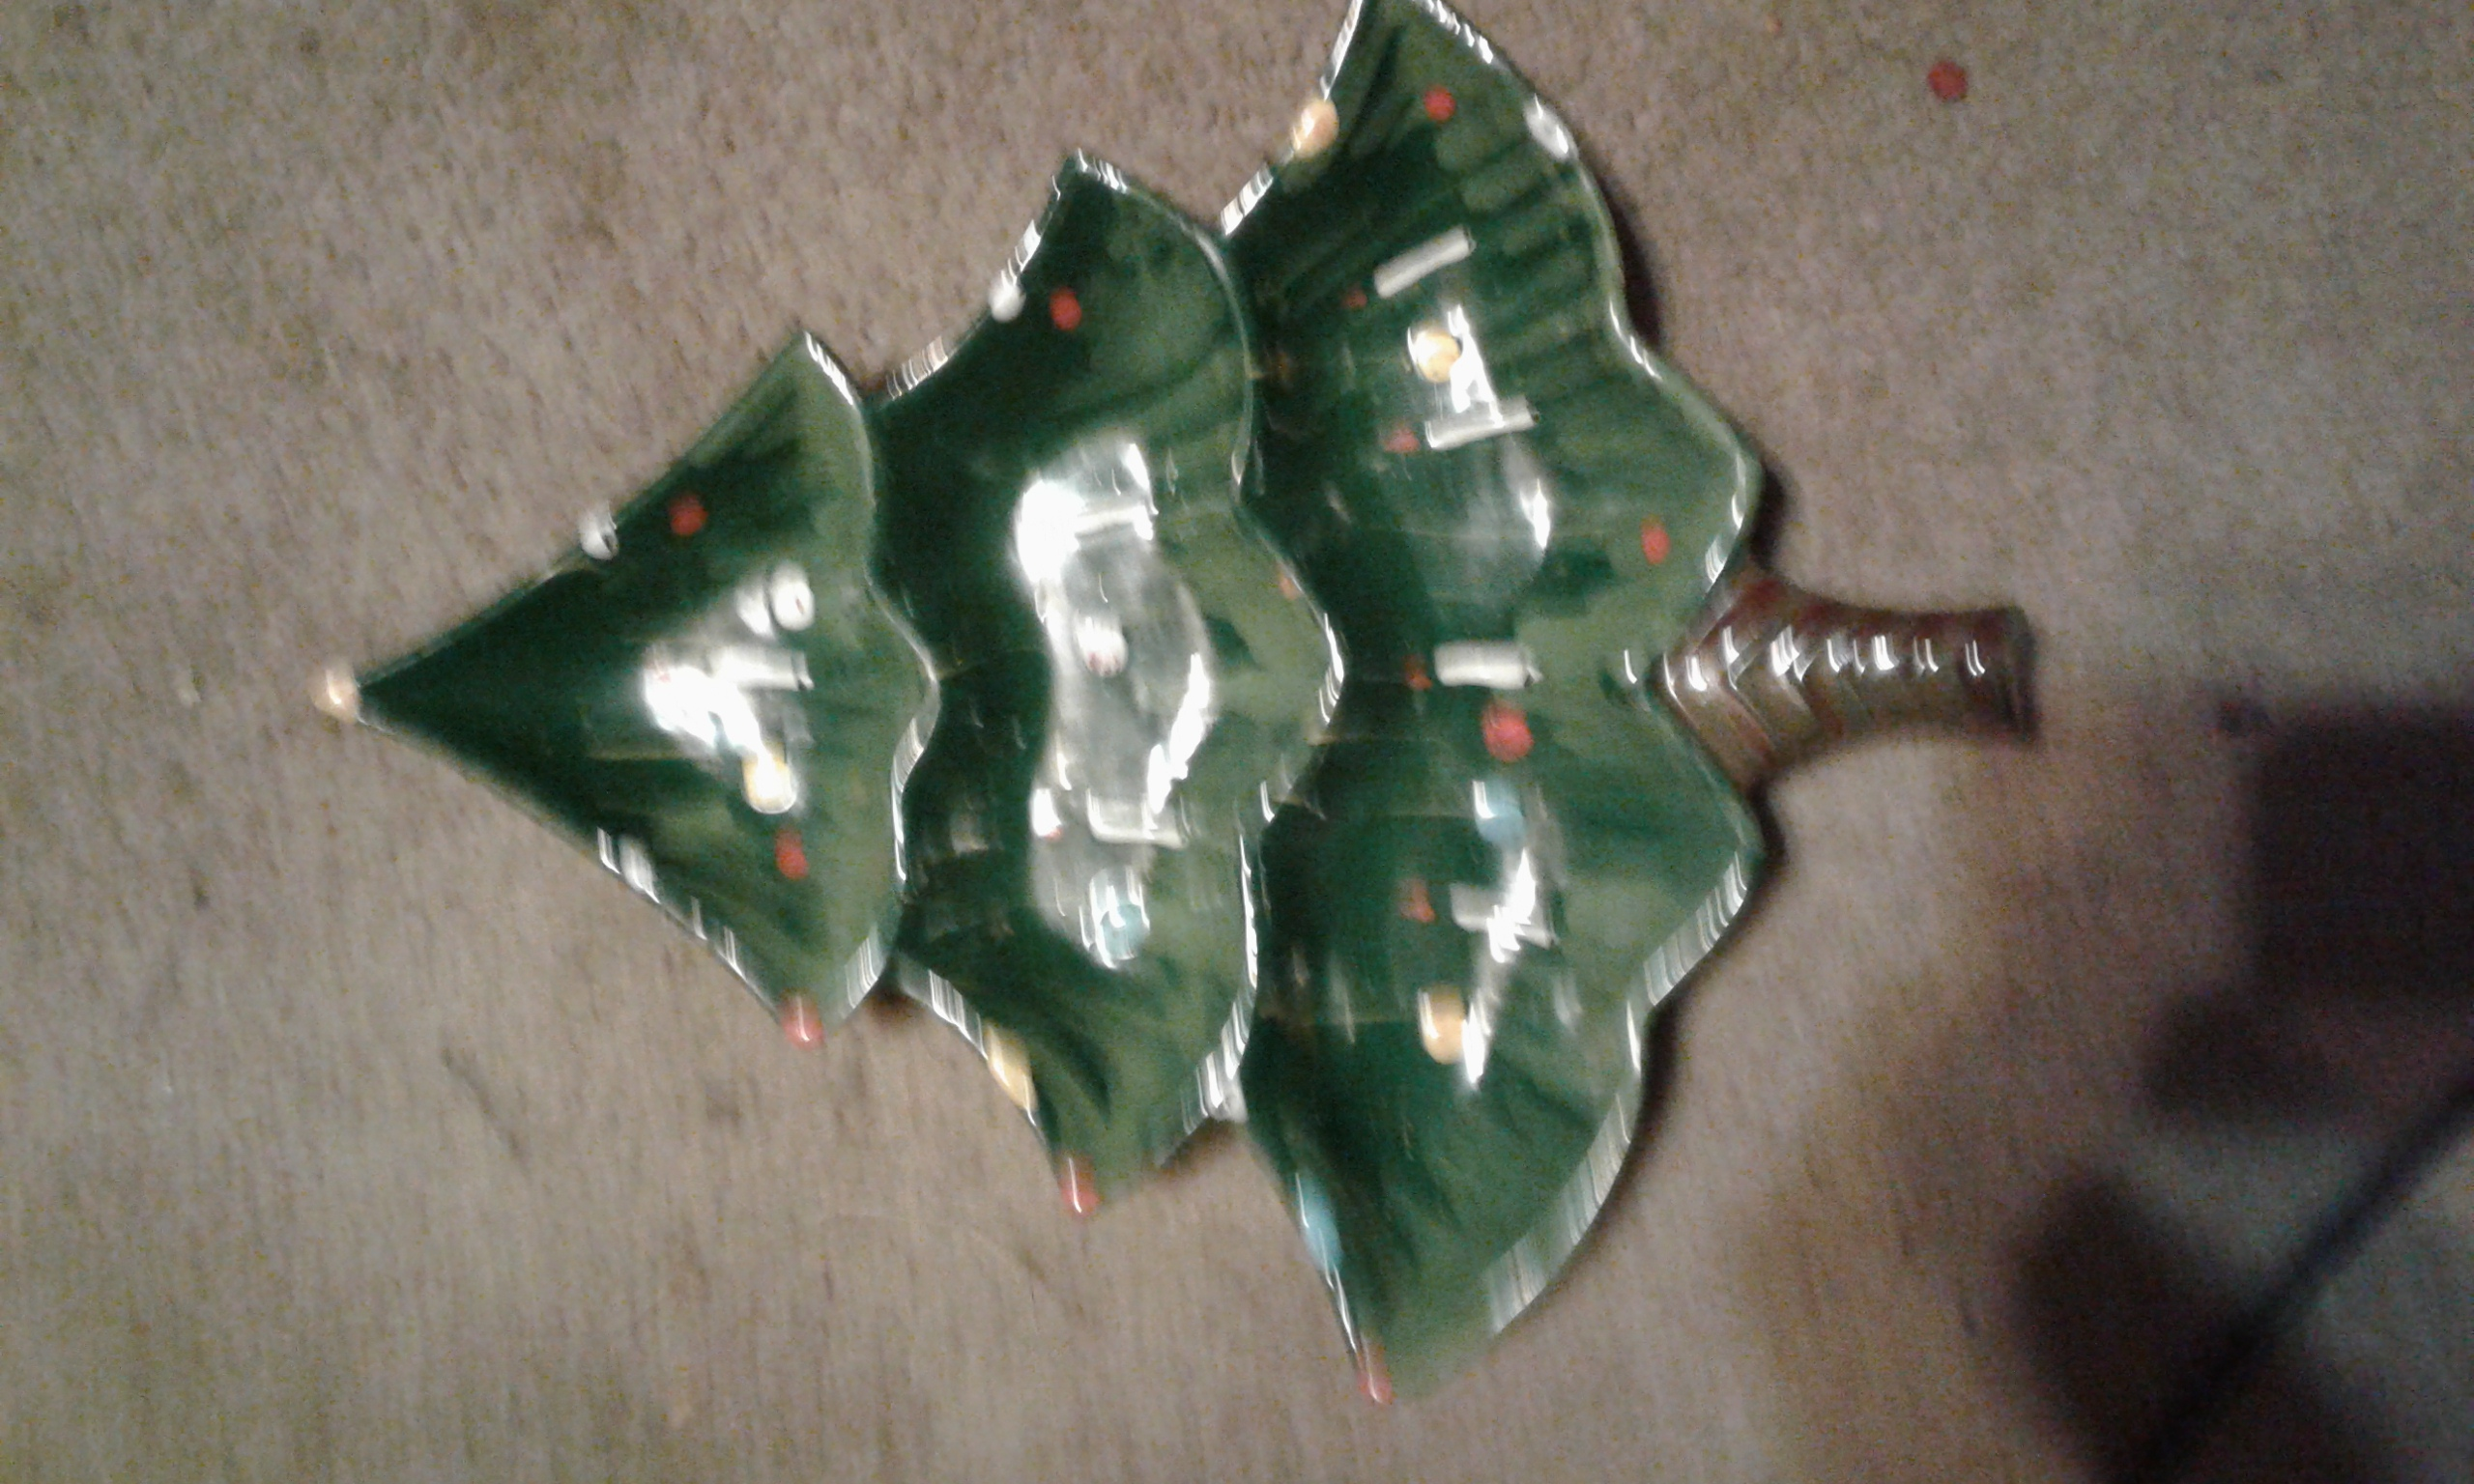 For Christmas dishes, one Christmas tree to put candies in.